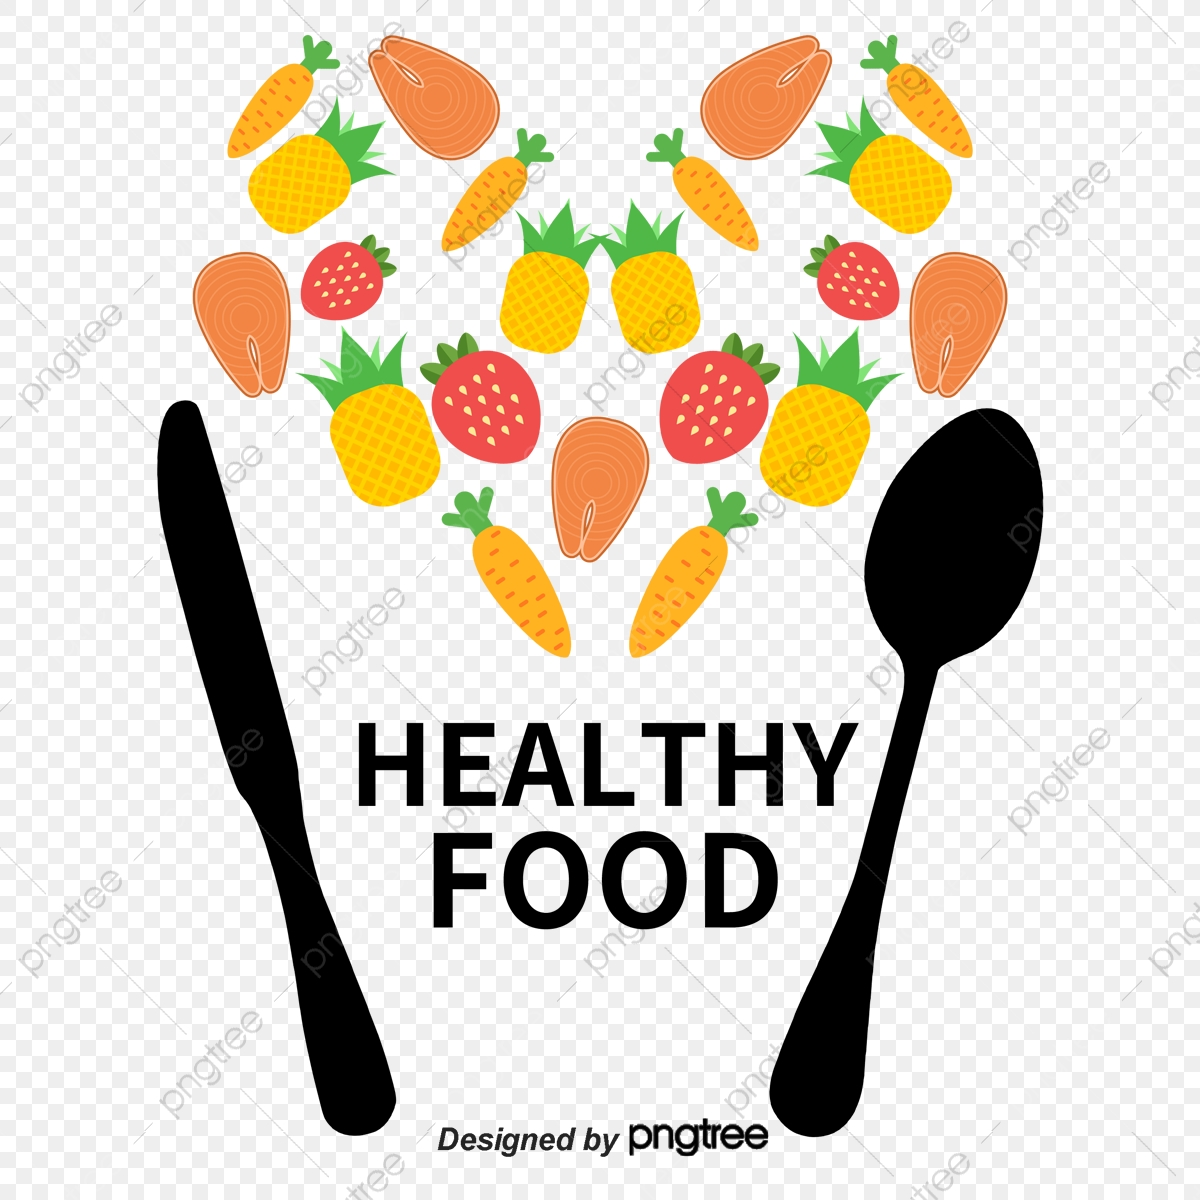 Healthy Food Food Vector Nutritious Vegetables Fork Png Transparent Clipart Image And Psd File For Free Download